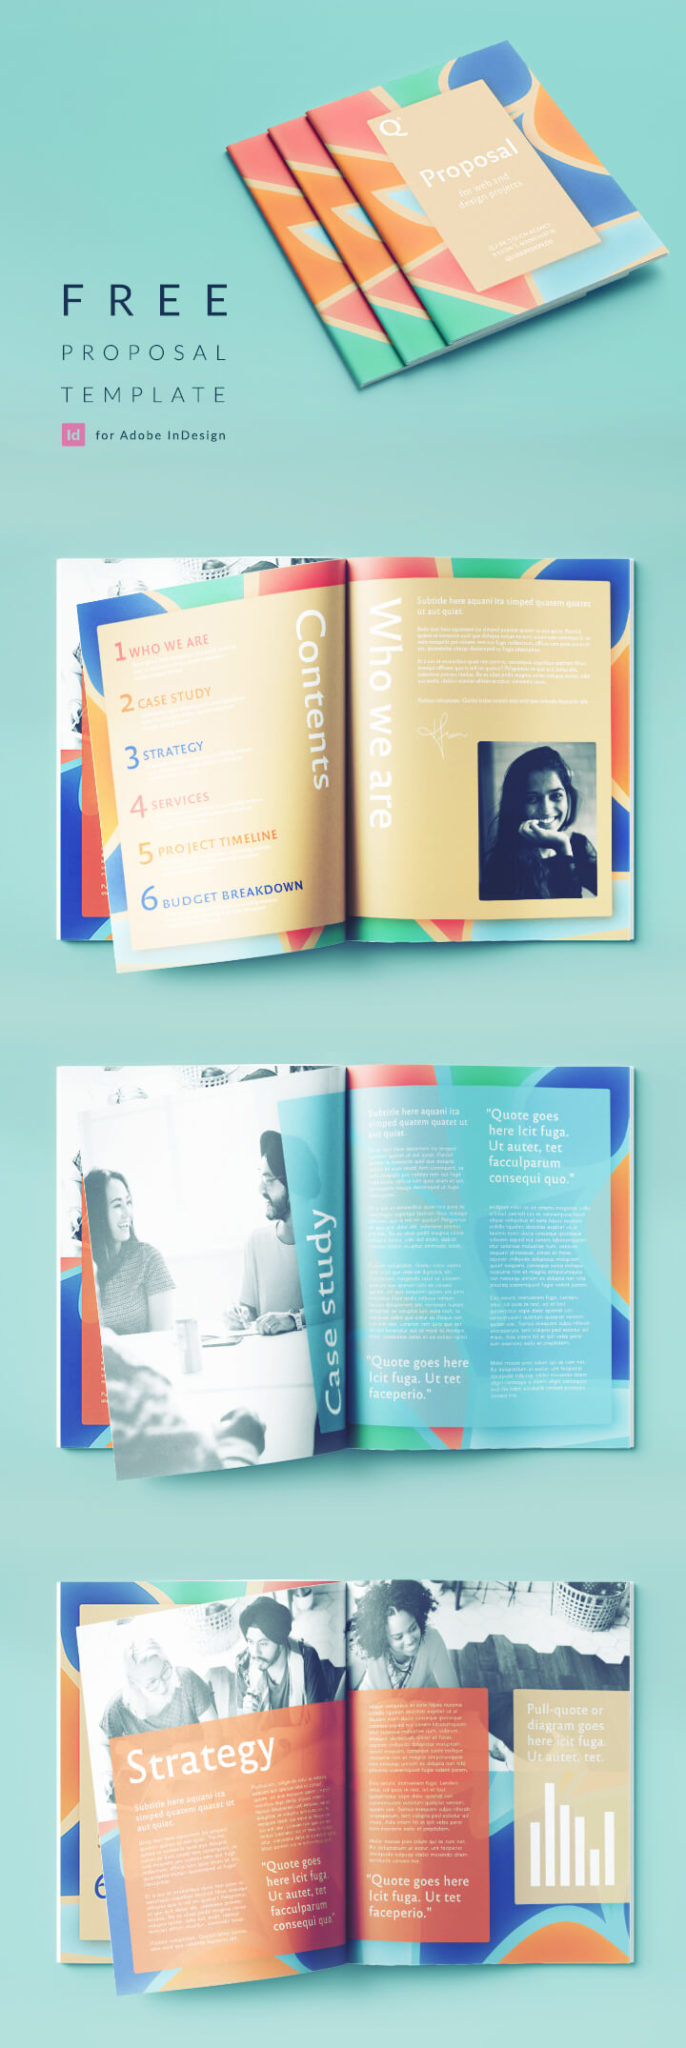 InDesign Proposal Template - Stylish, colorful InDesign proposal template, perfect for a creative or tech business. Free download.